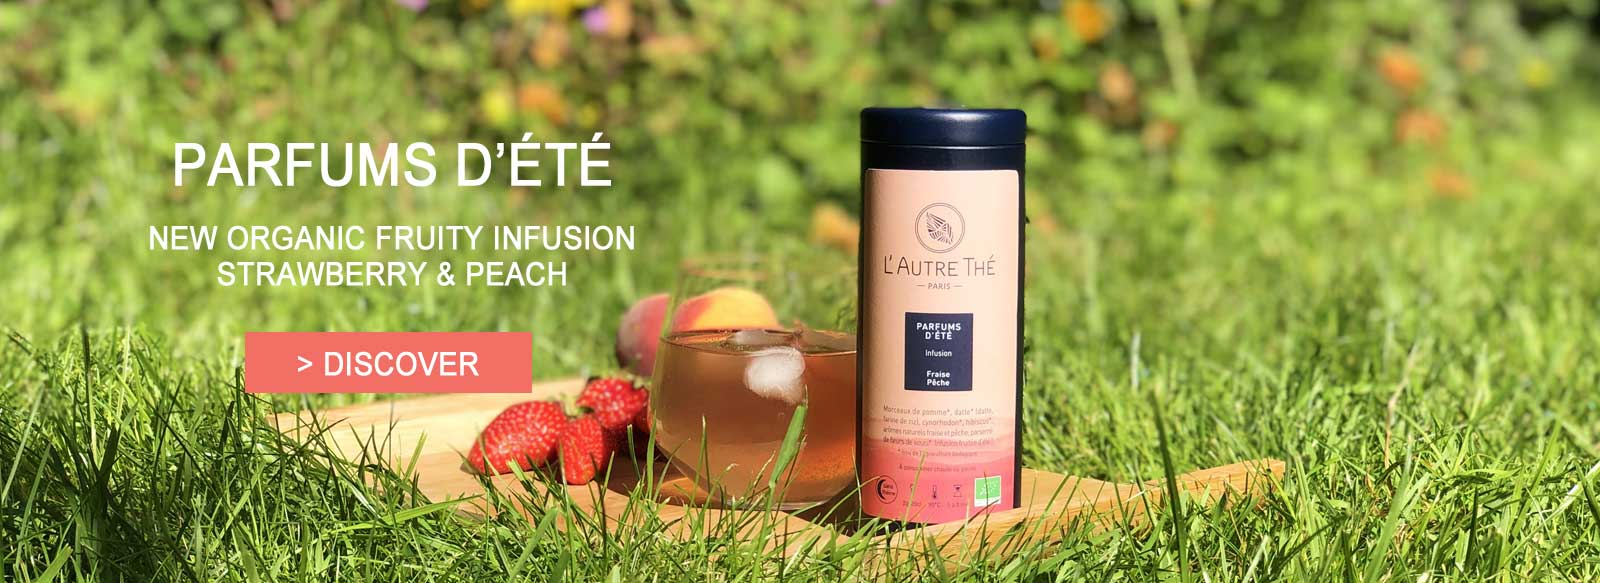 Parfums d'été : new organic fruity infusion strawberry and peach